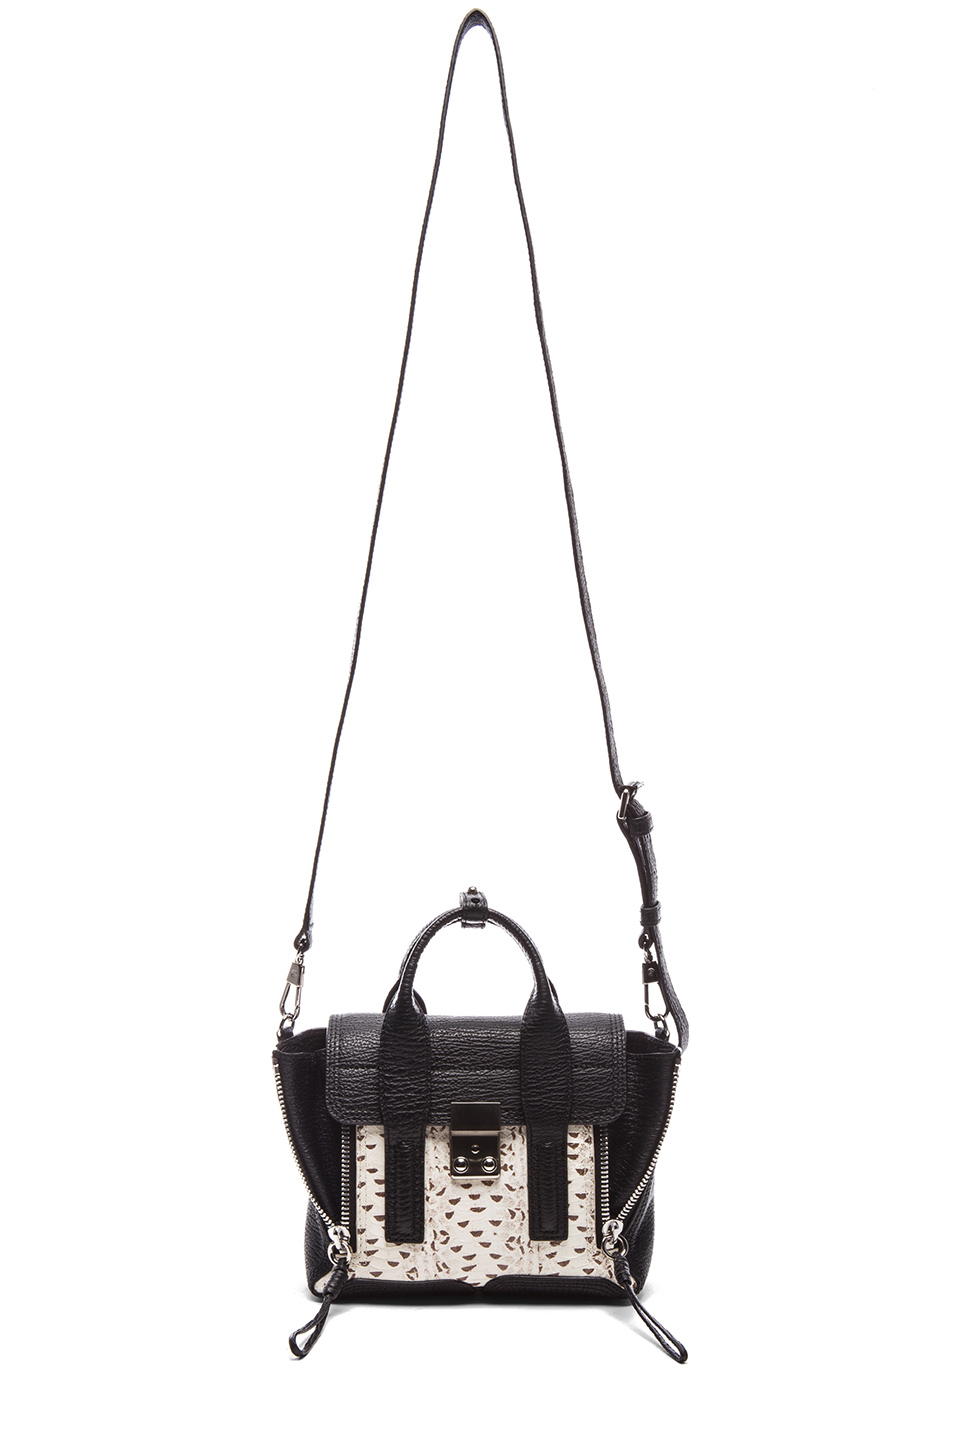 3.1 phillip lim|EXCLUSIVE Mini Pashli Satchel in White & Black